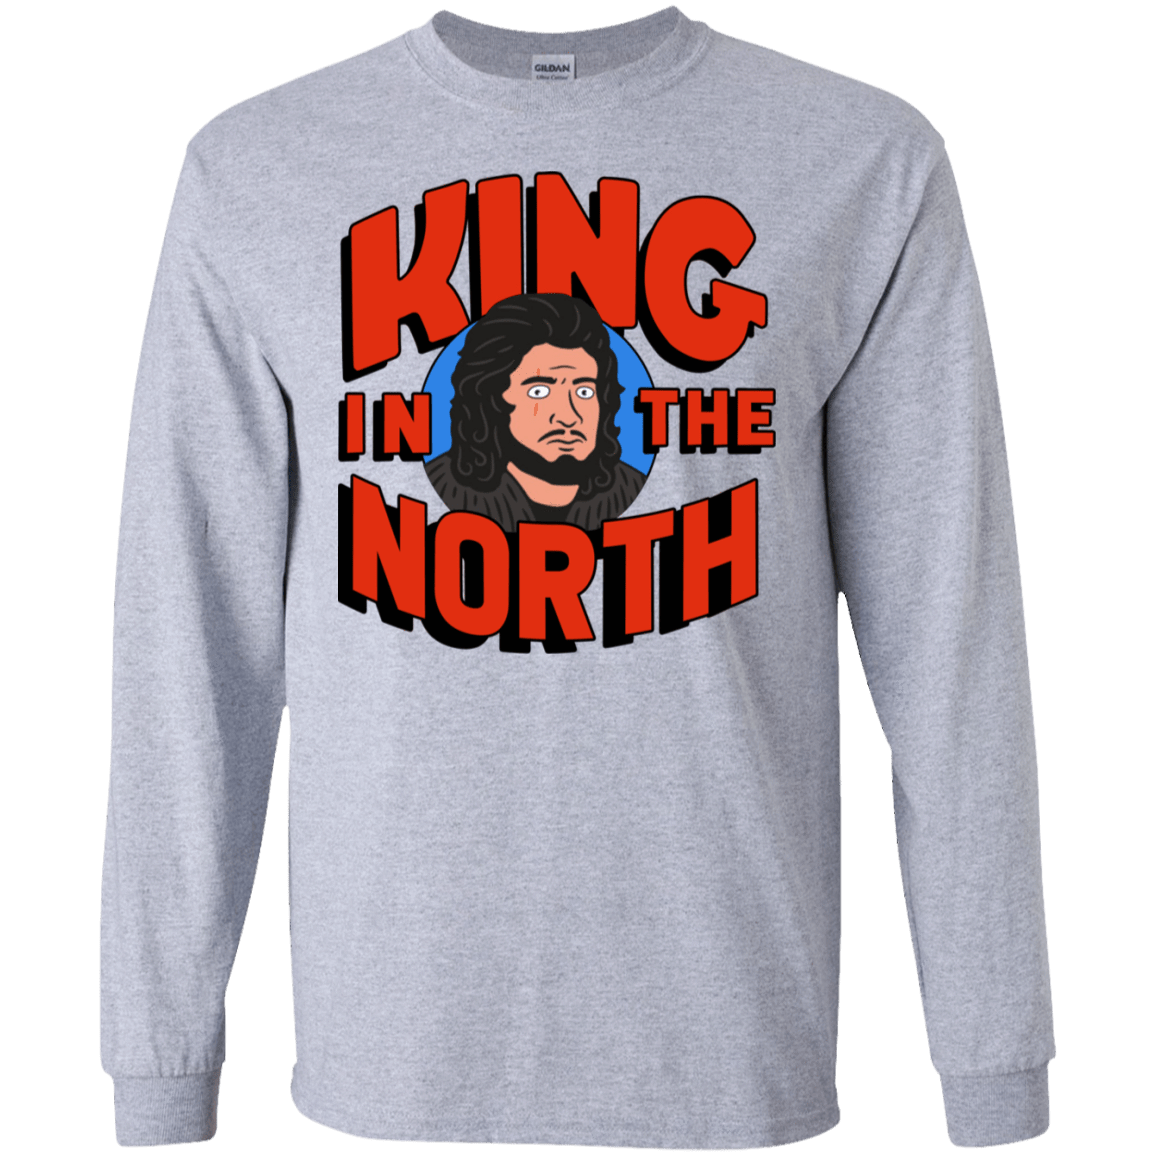 King In The North 30-188-73154812-335 - Tee Ript